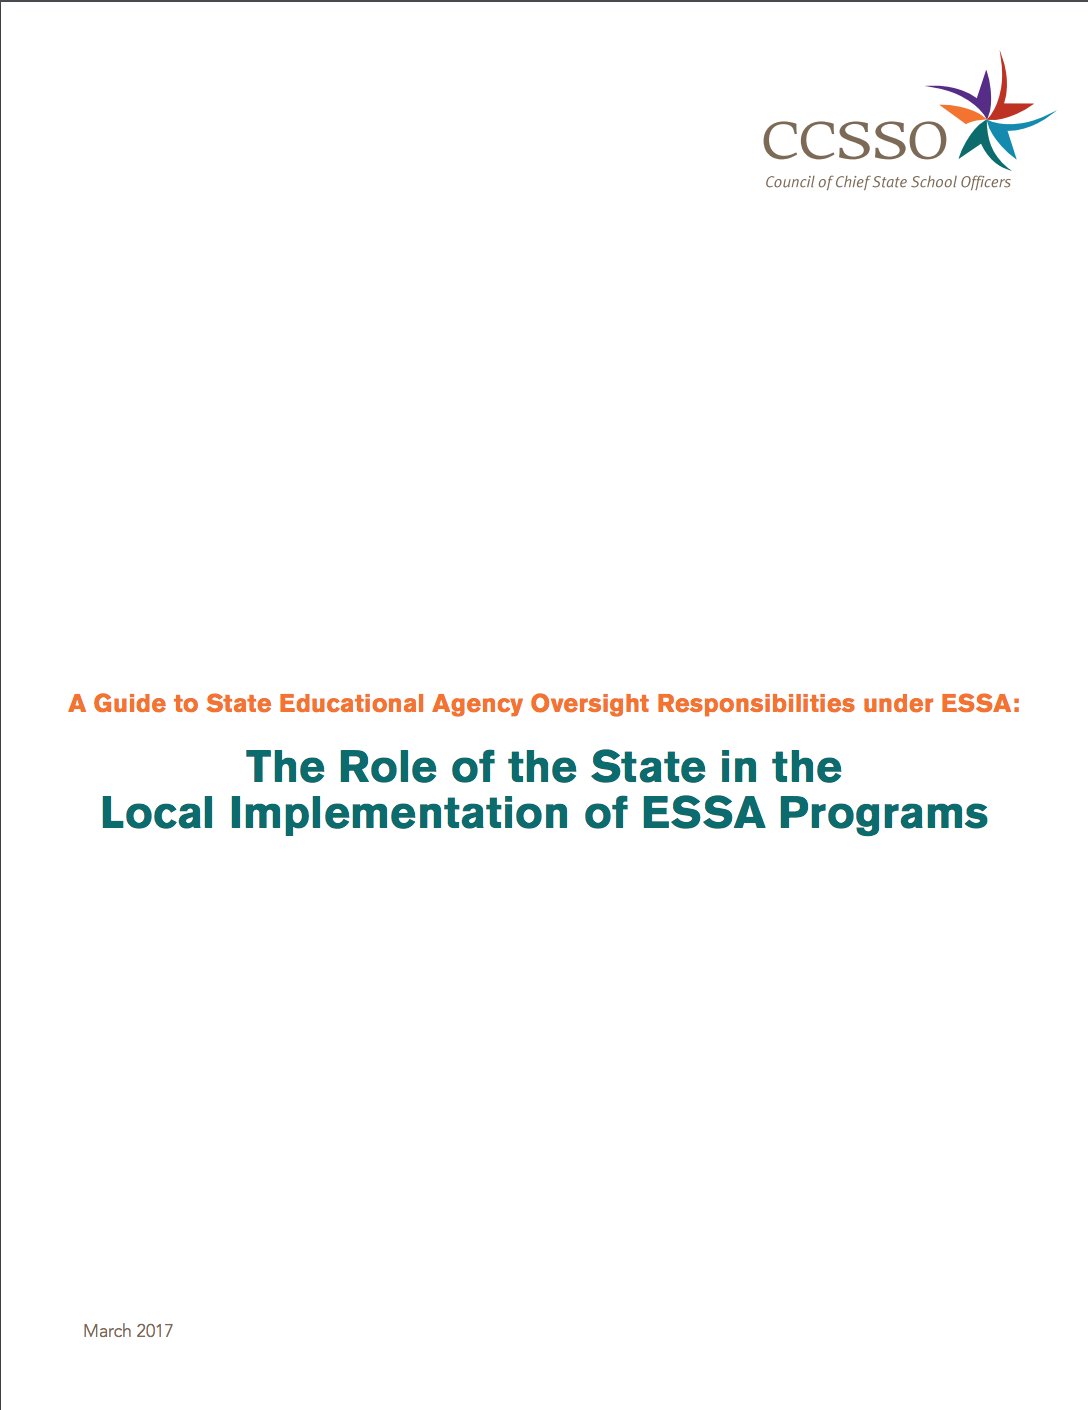 The Role of the State in the Local Implementation of ESSA Programs title page